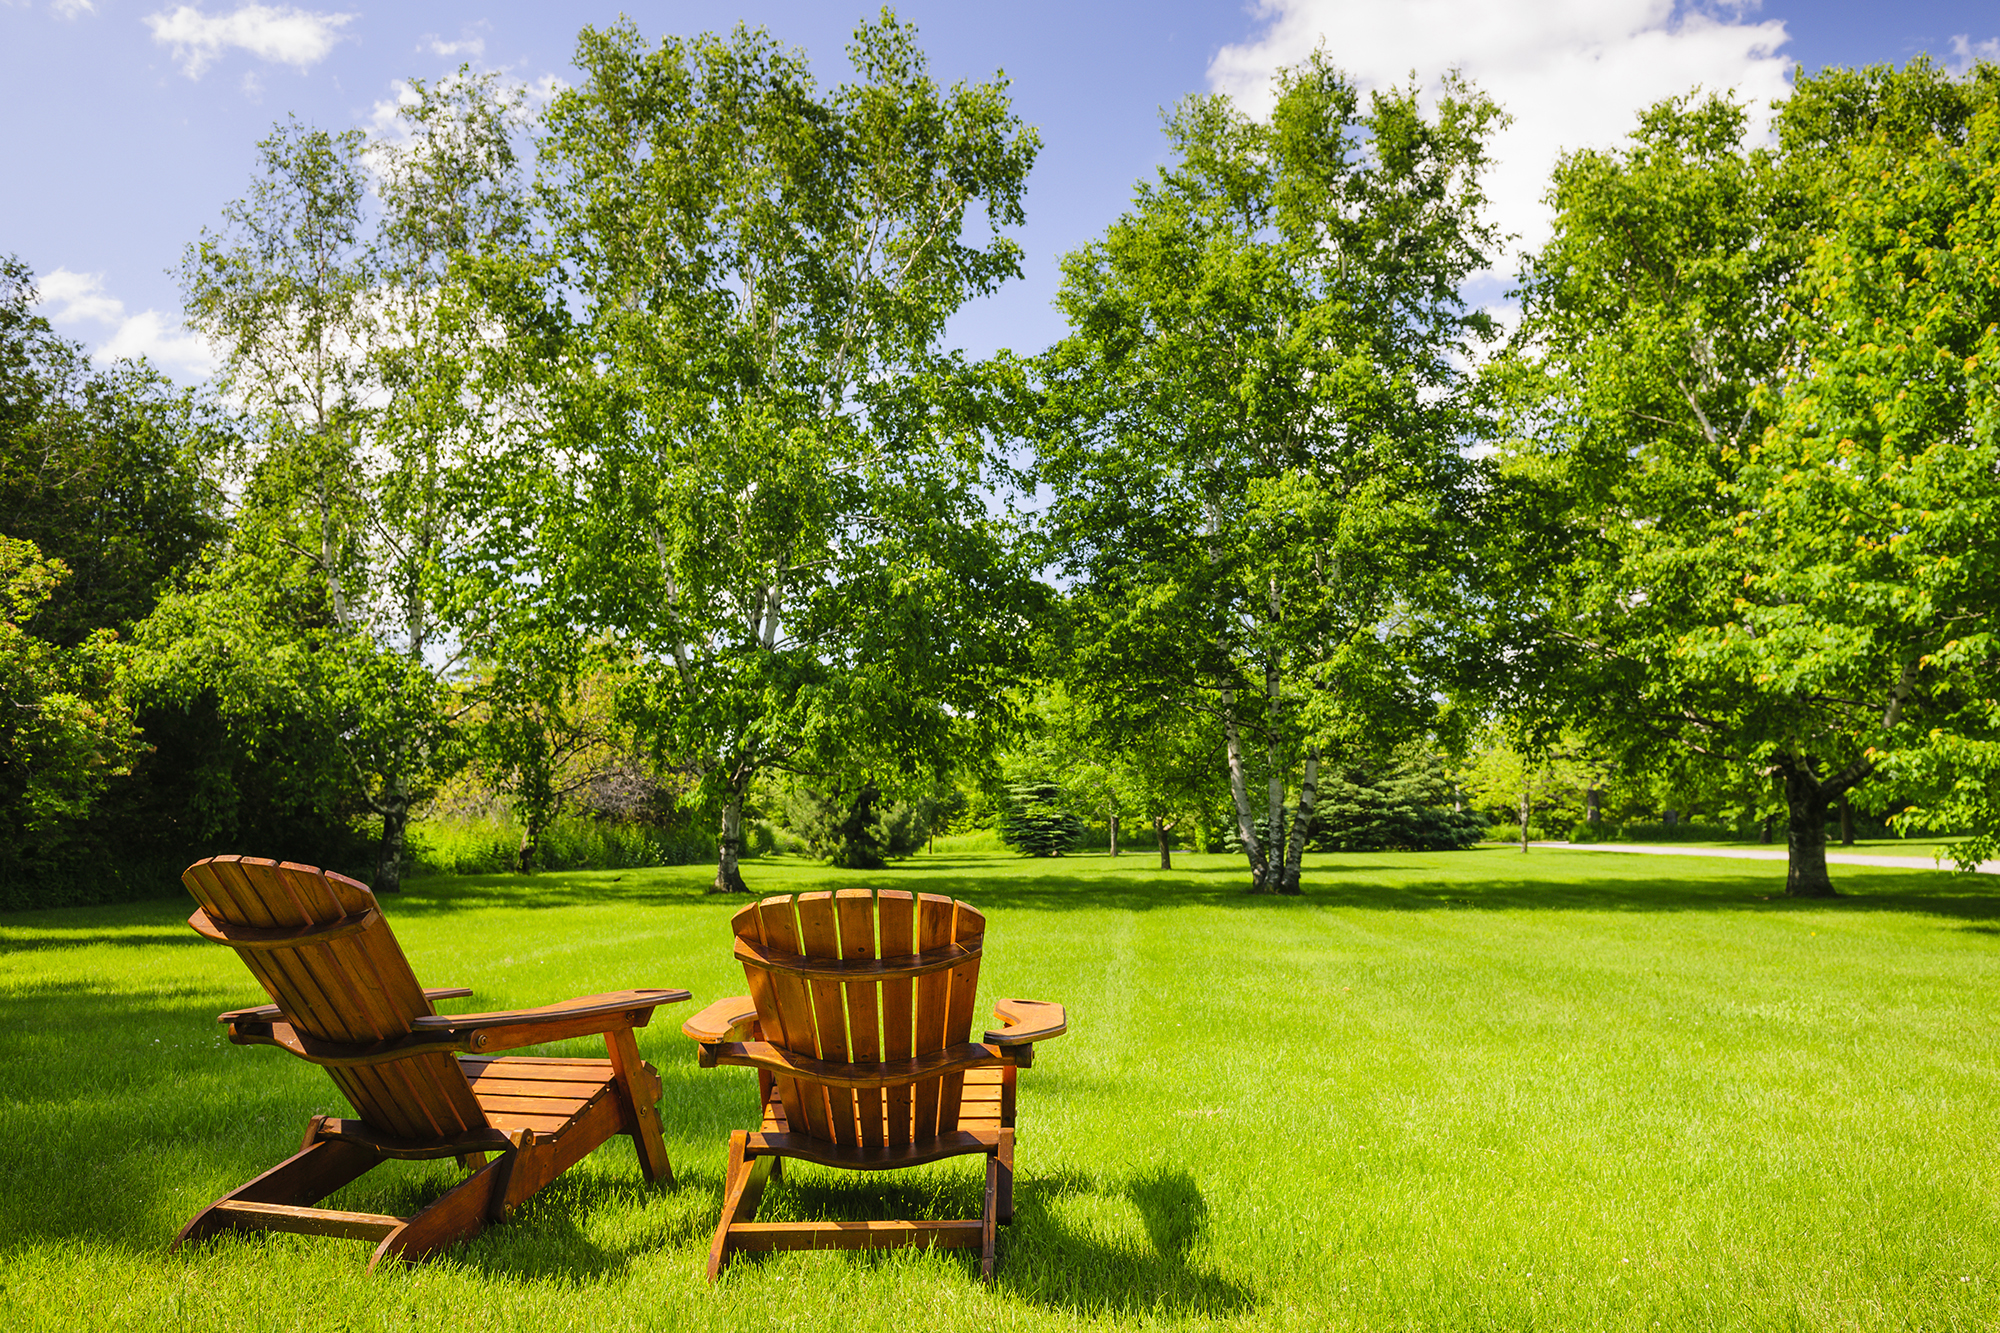 two-chairs-green-grass-and-trees